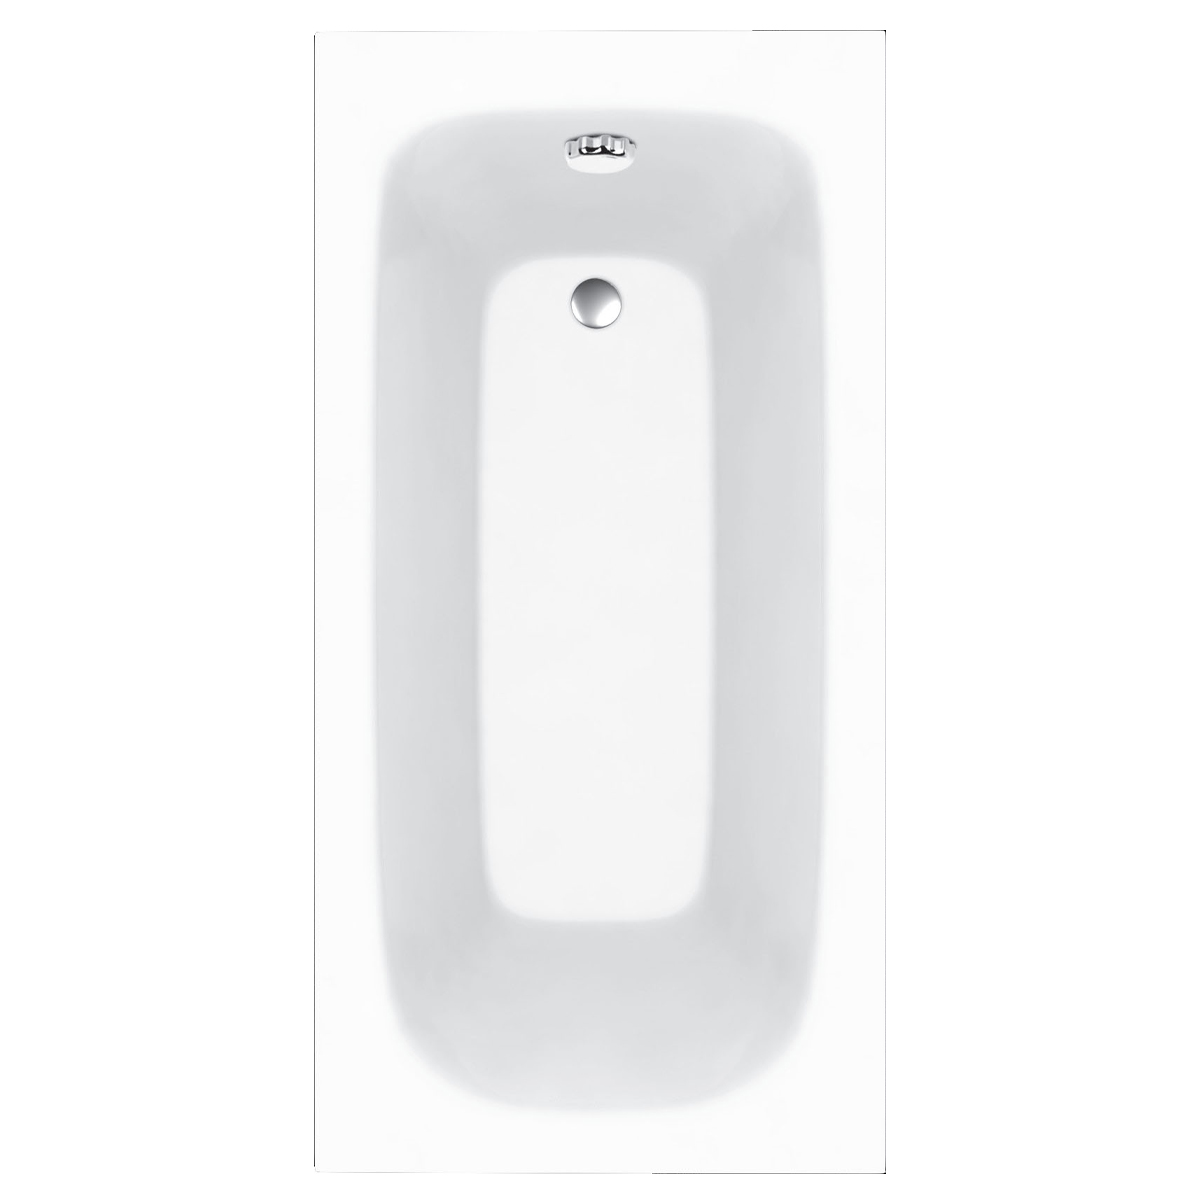 K-Vit G4K 1675 x 700 Contract Bath